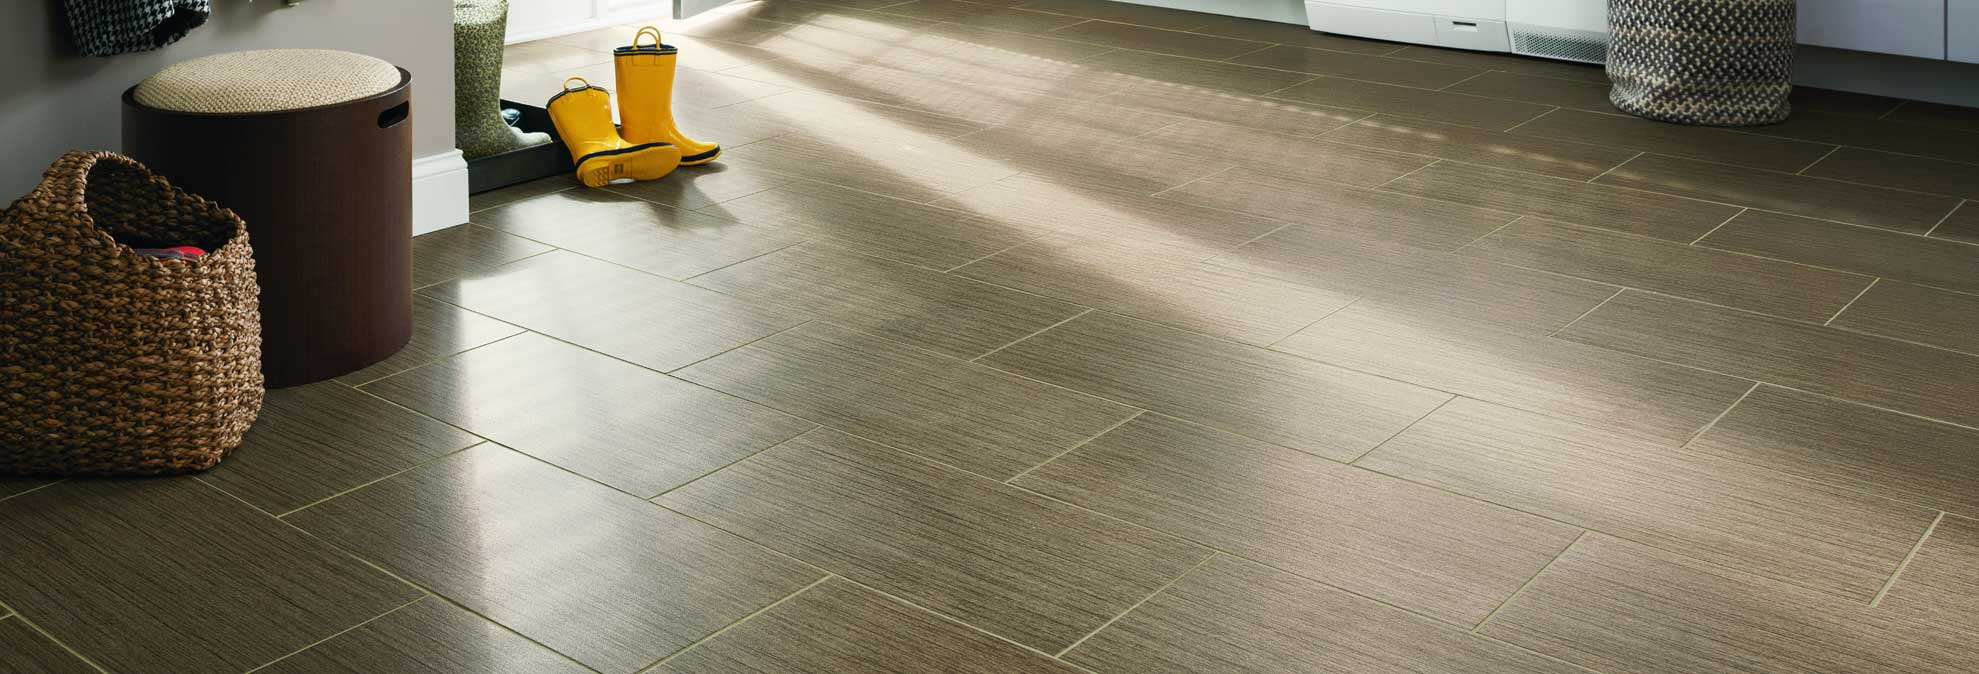 best laminate flooring best flooring buying guide - consumer reports DDRRNXQ